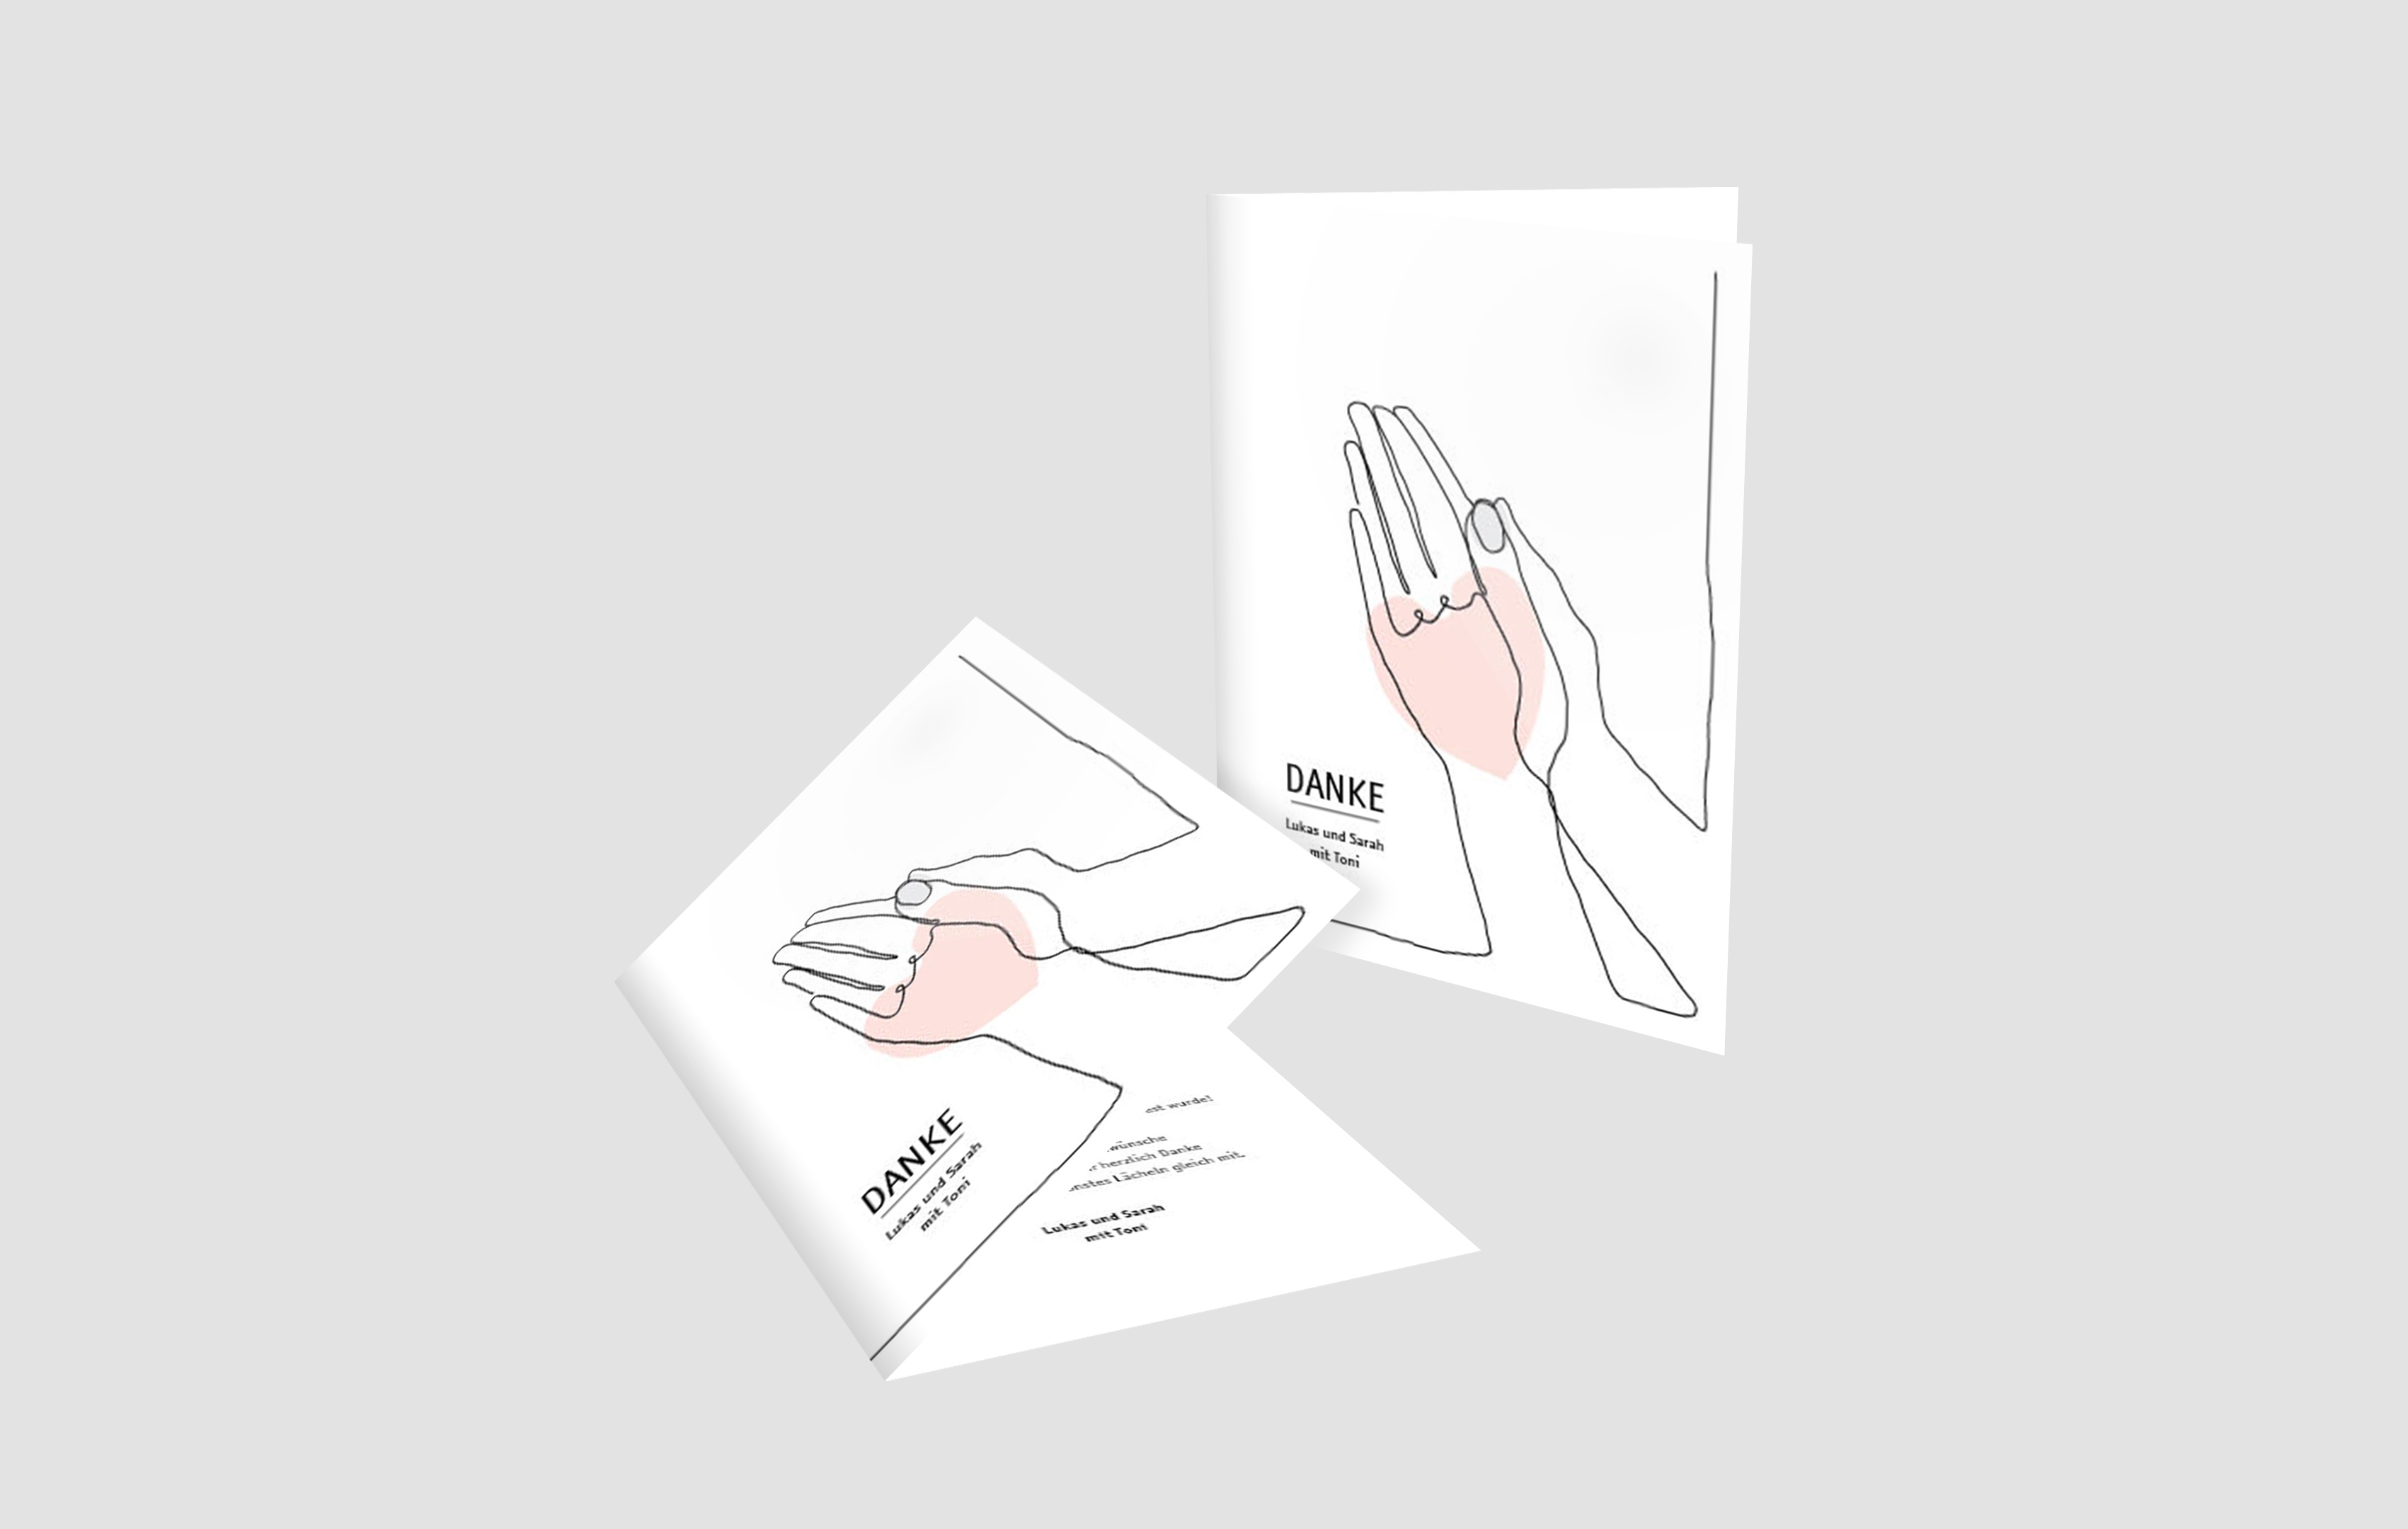 Dankeskarte Hochzeit Praying drawn hands